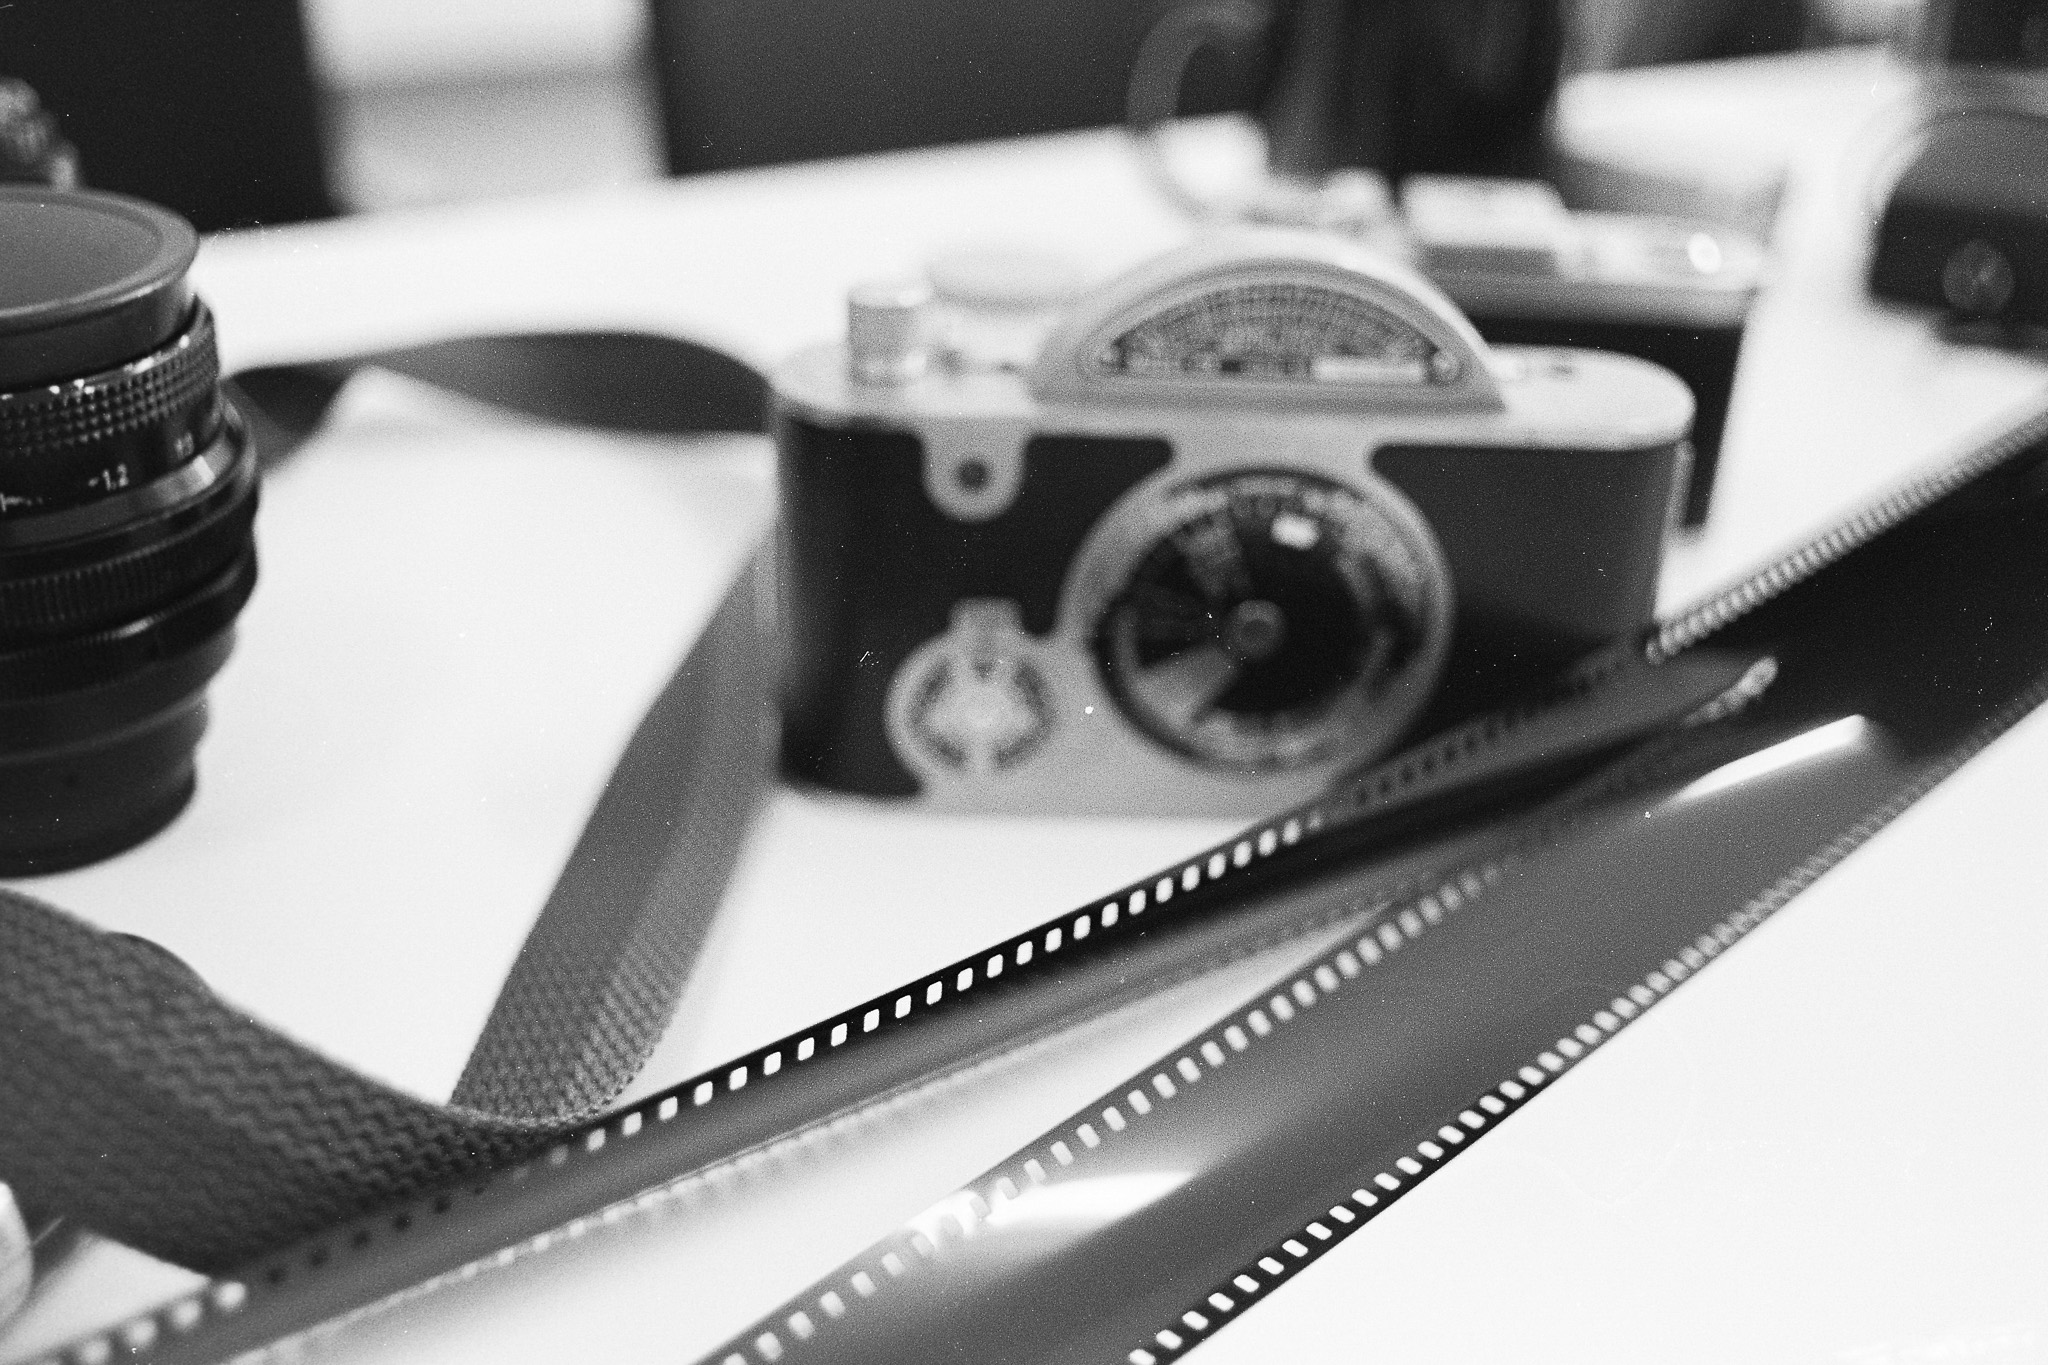 Analog-Extrem-Workshop-037.jpg